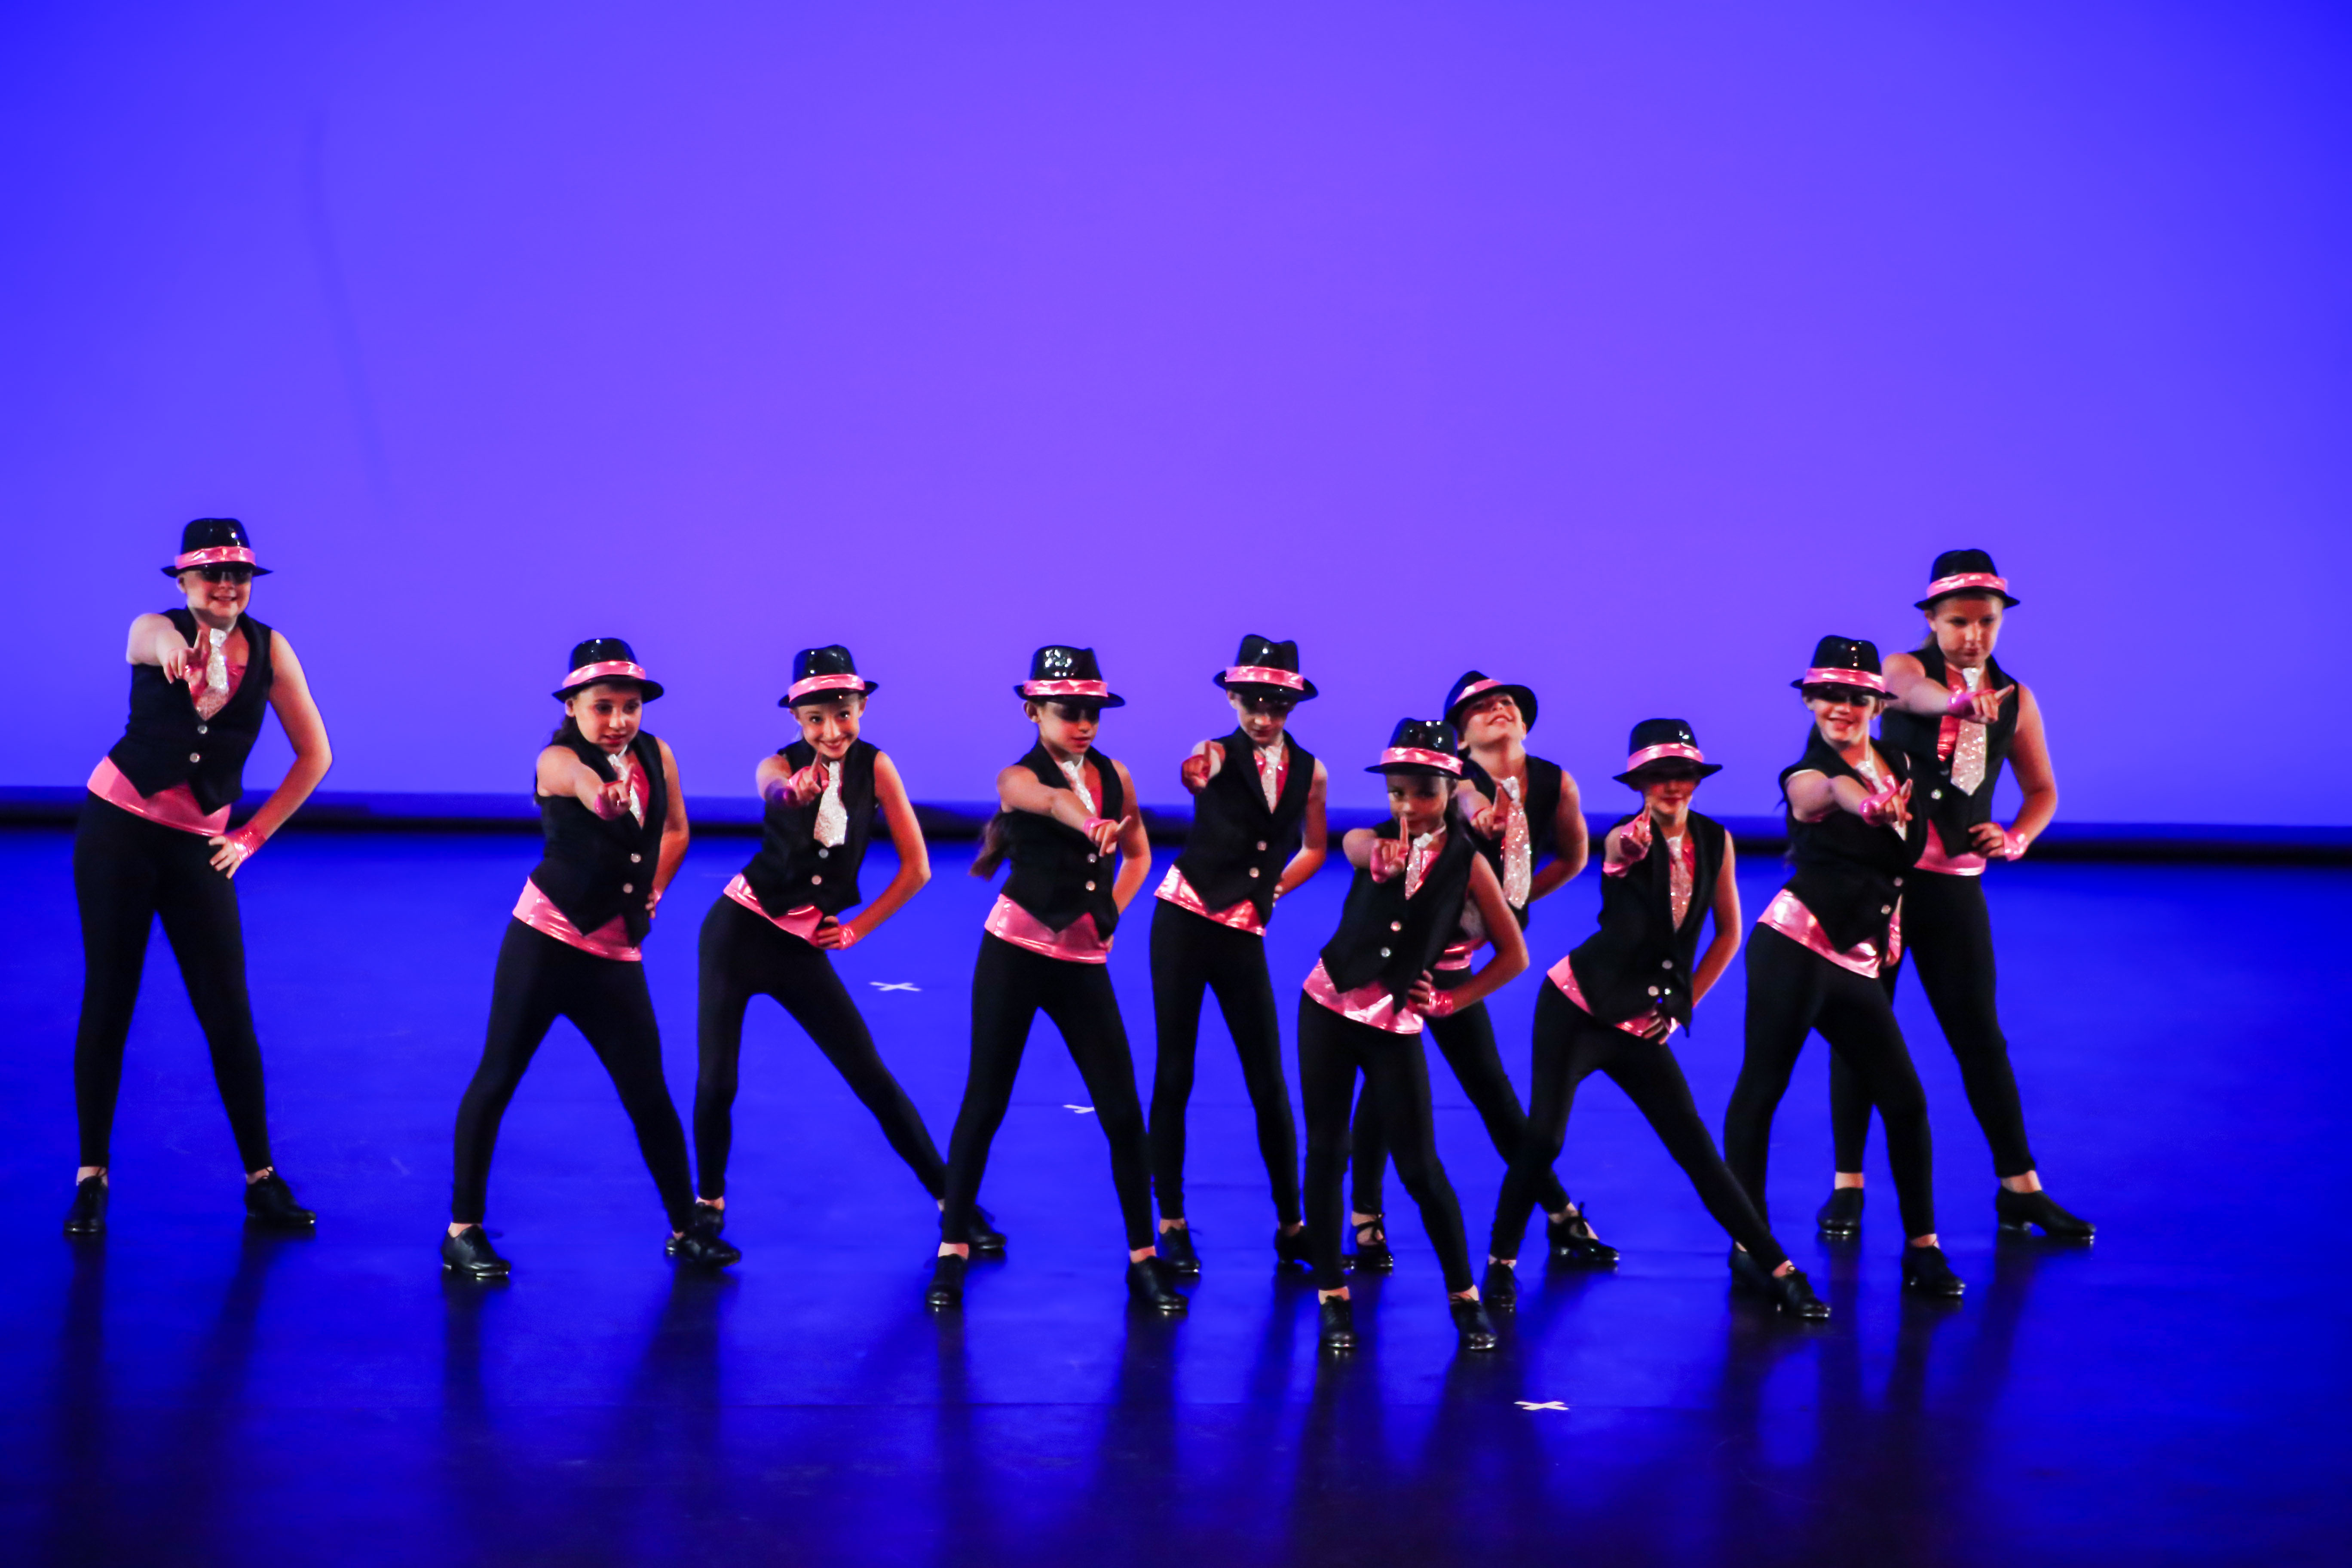 Tap Elite Dance And Performing Arts Center